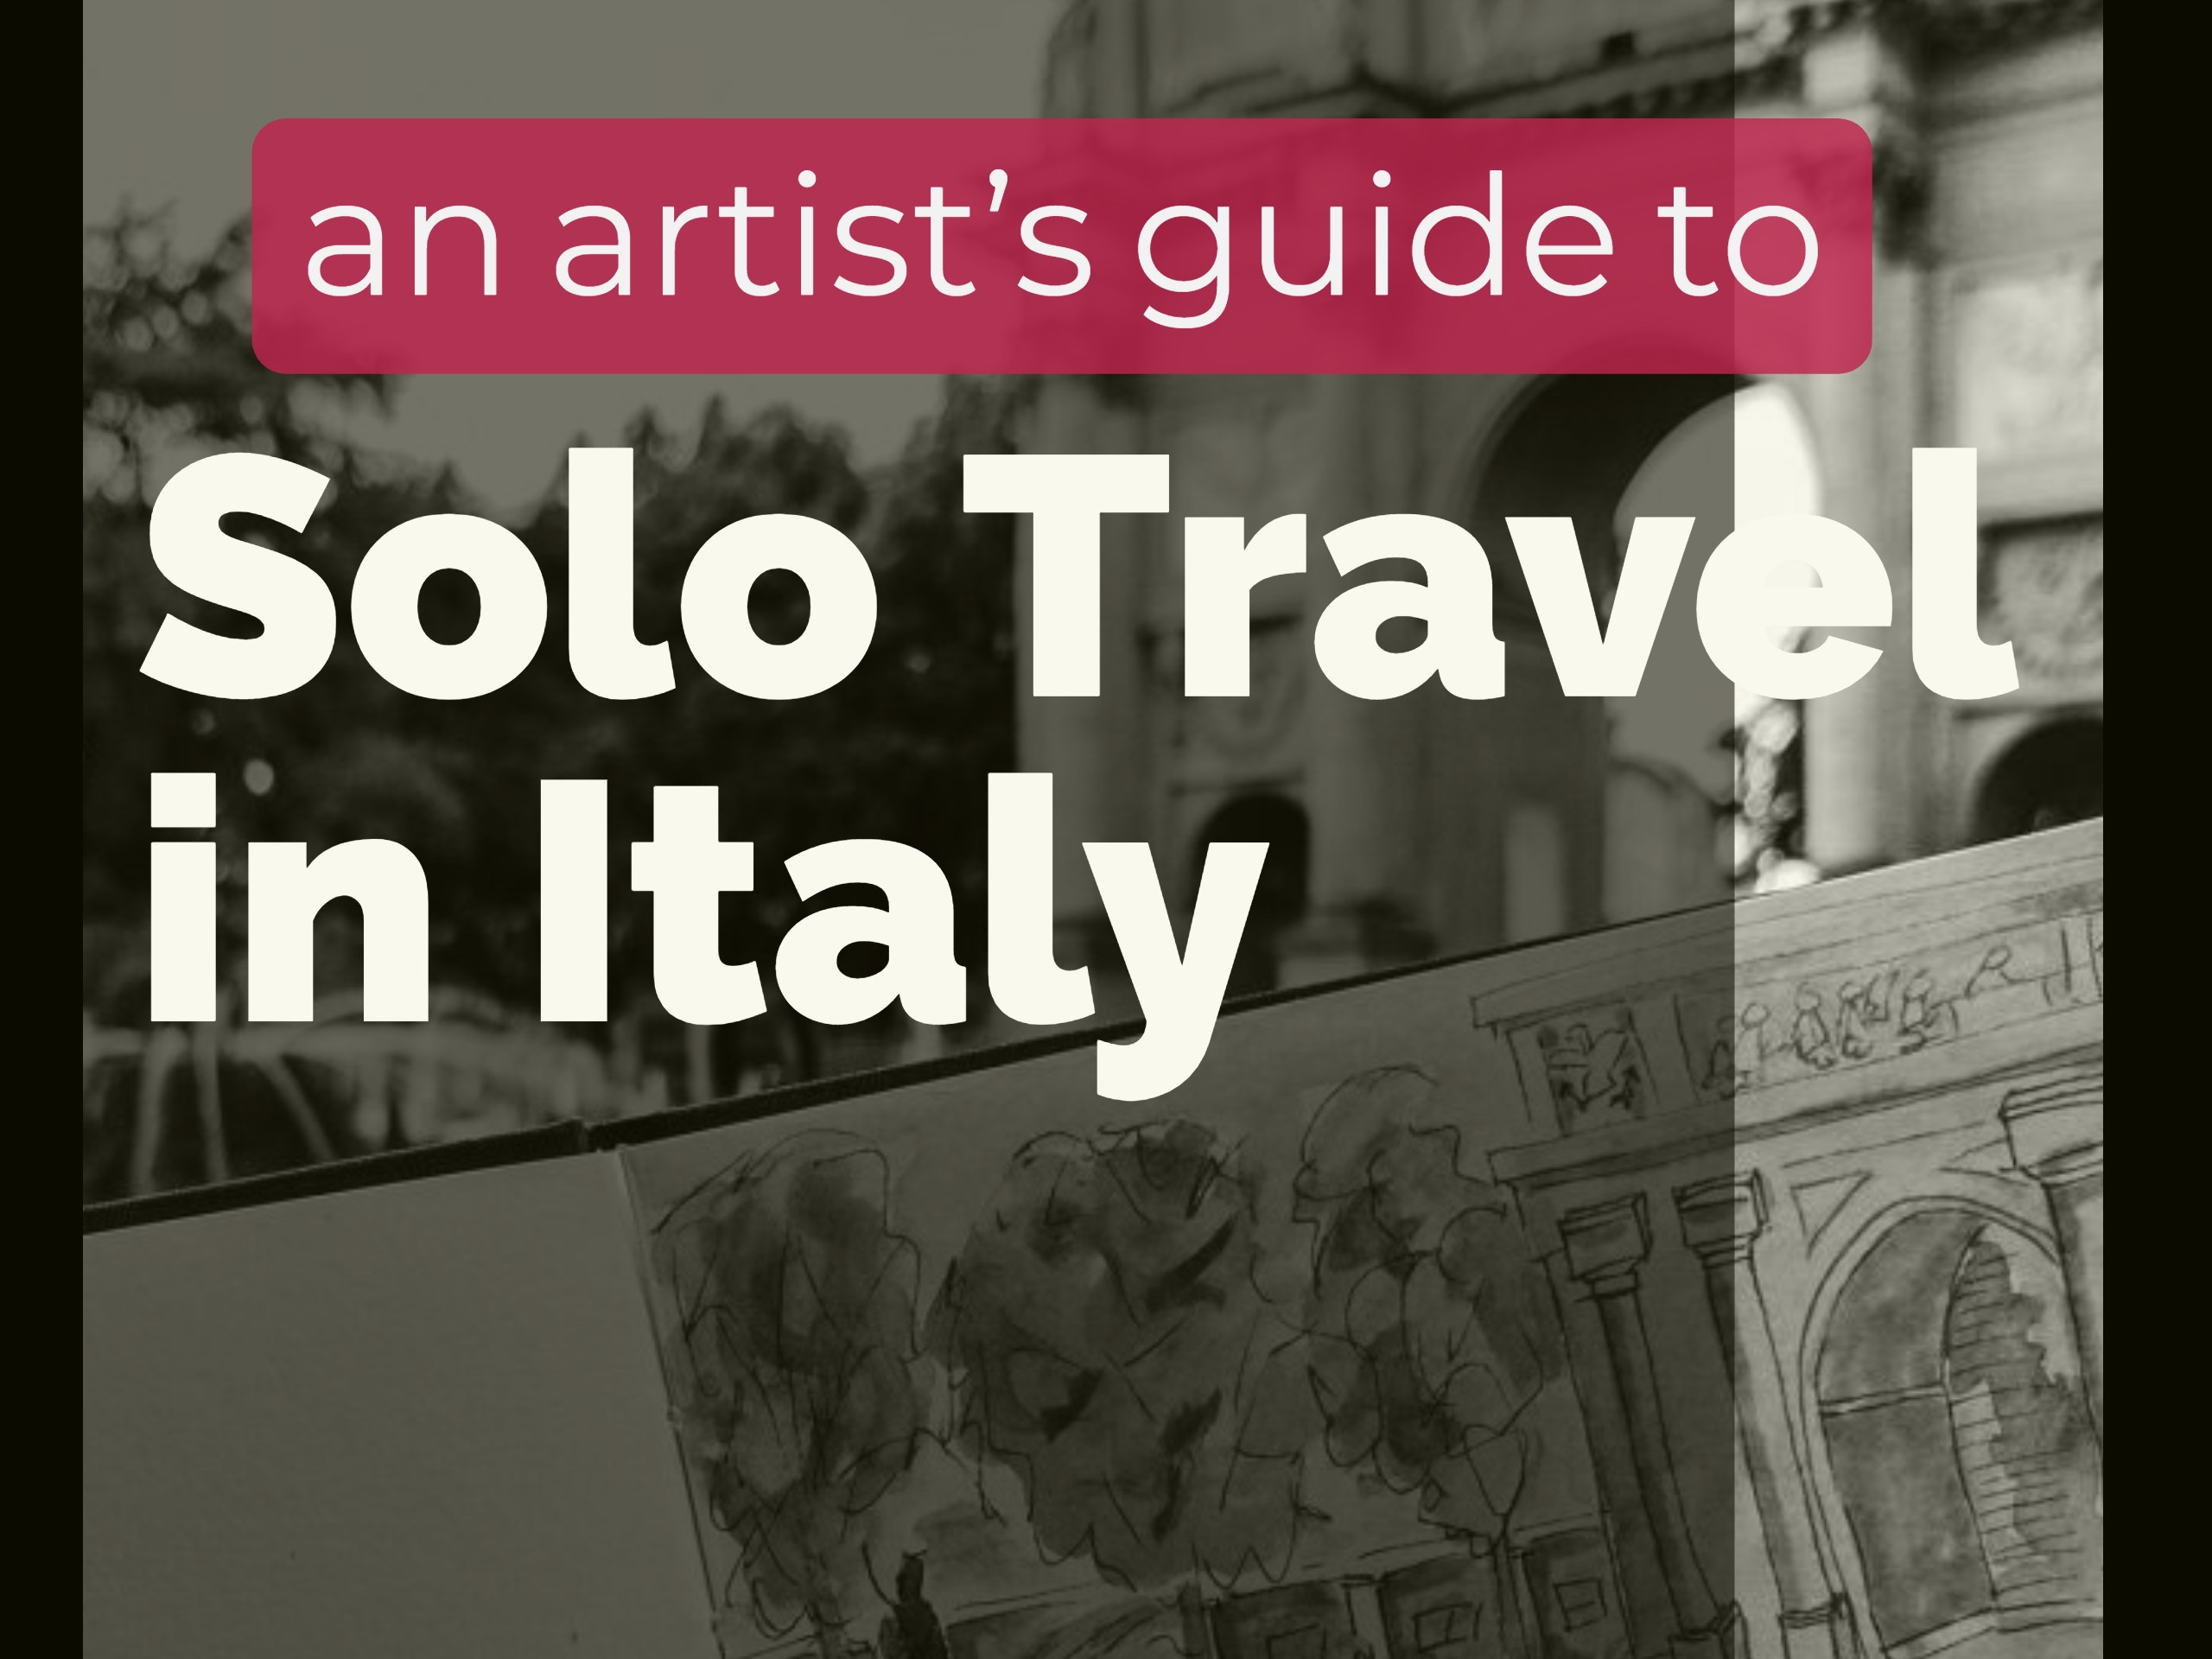 An artist's guide to solo travel in Italy